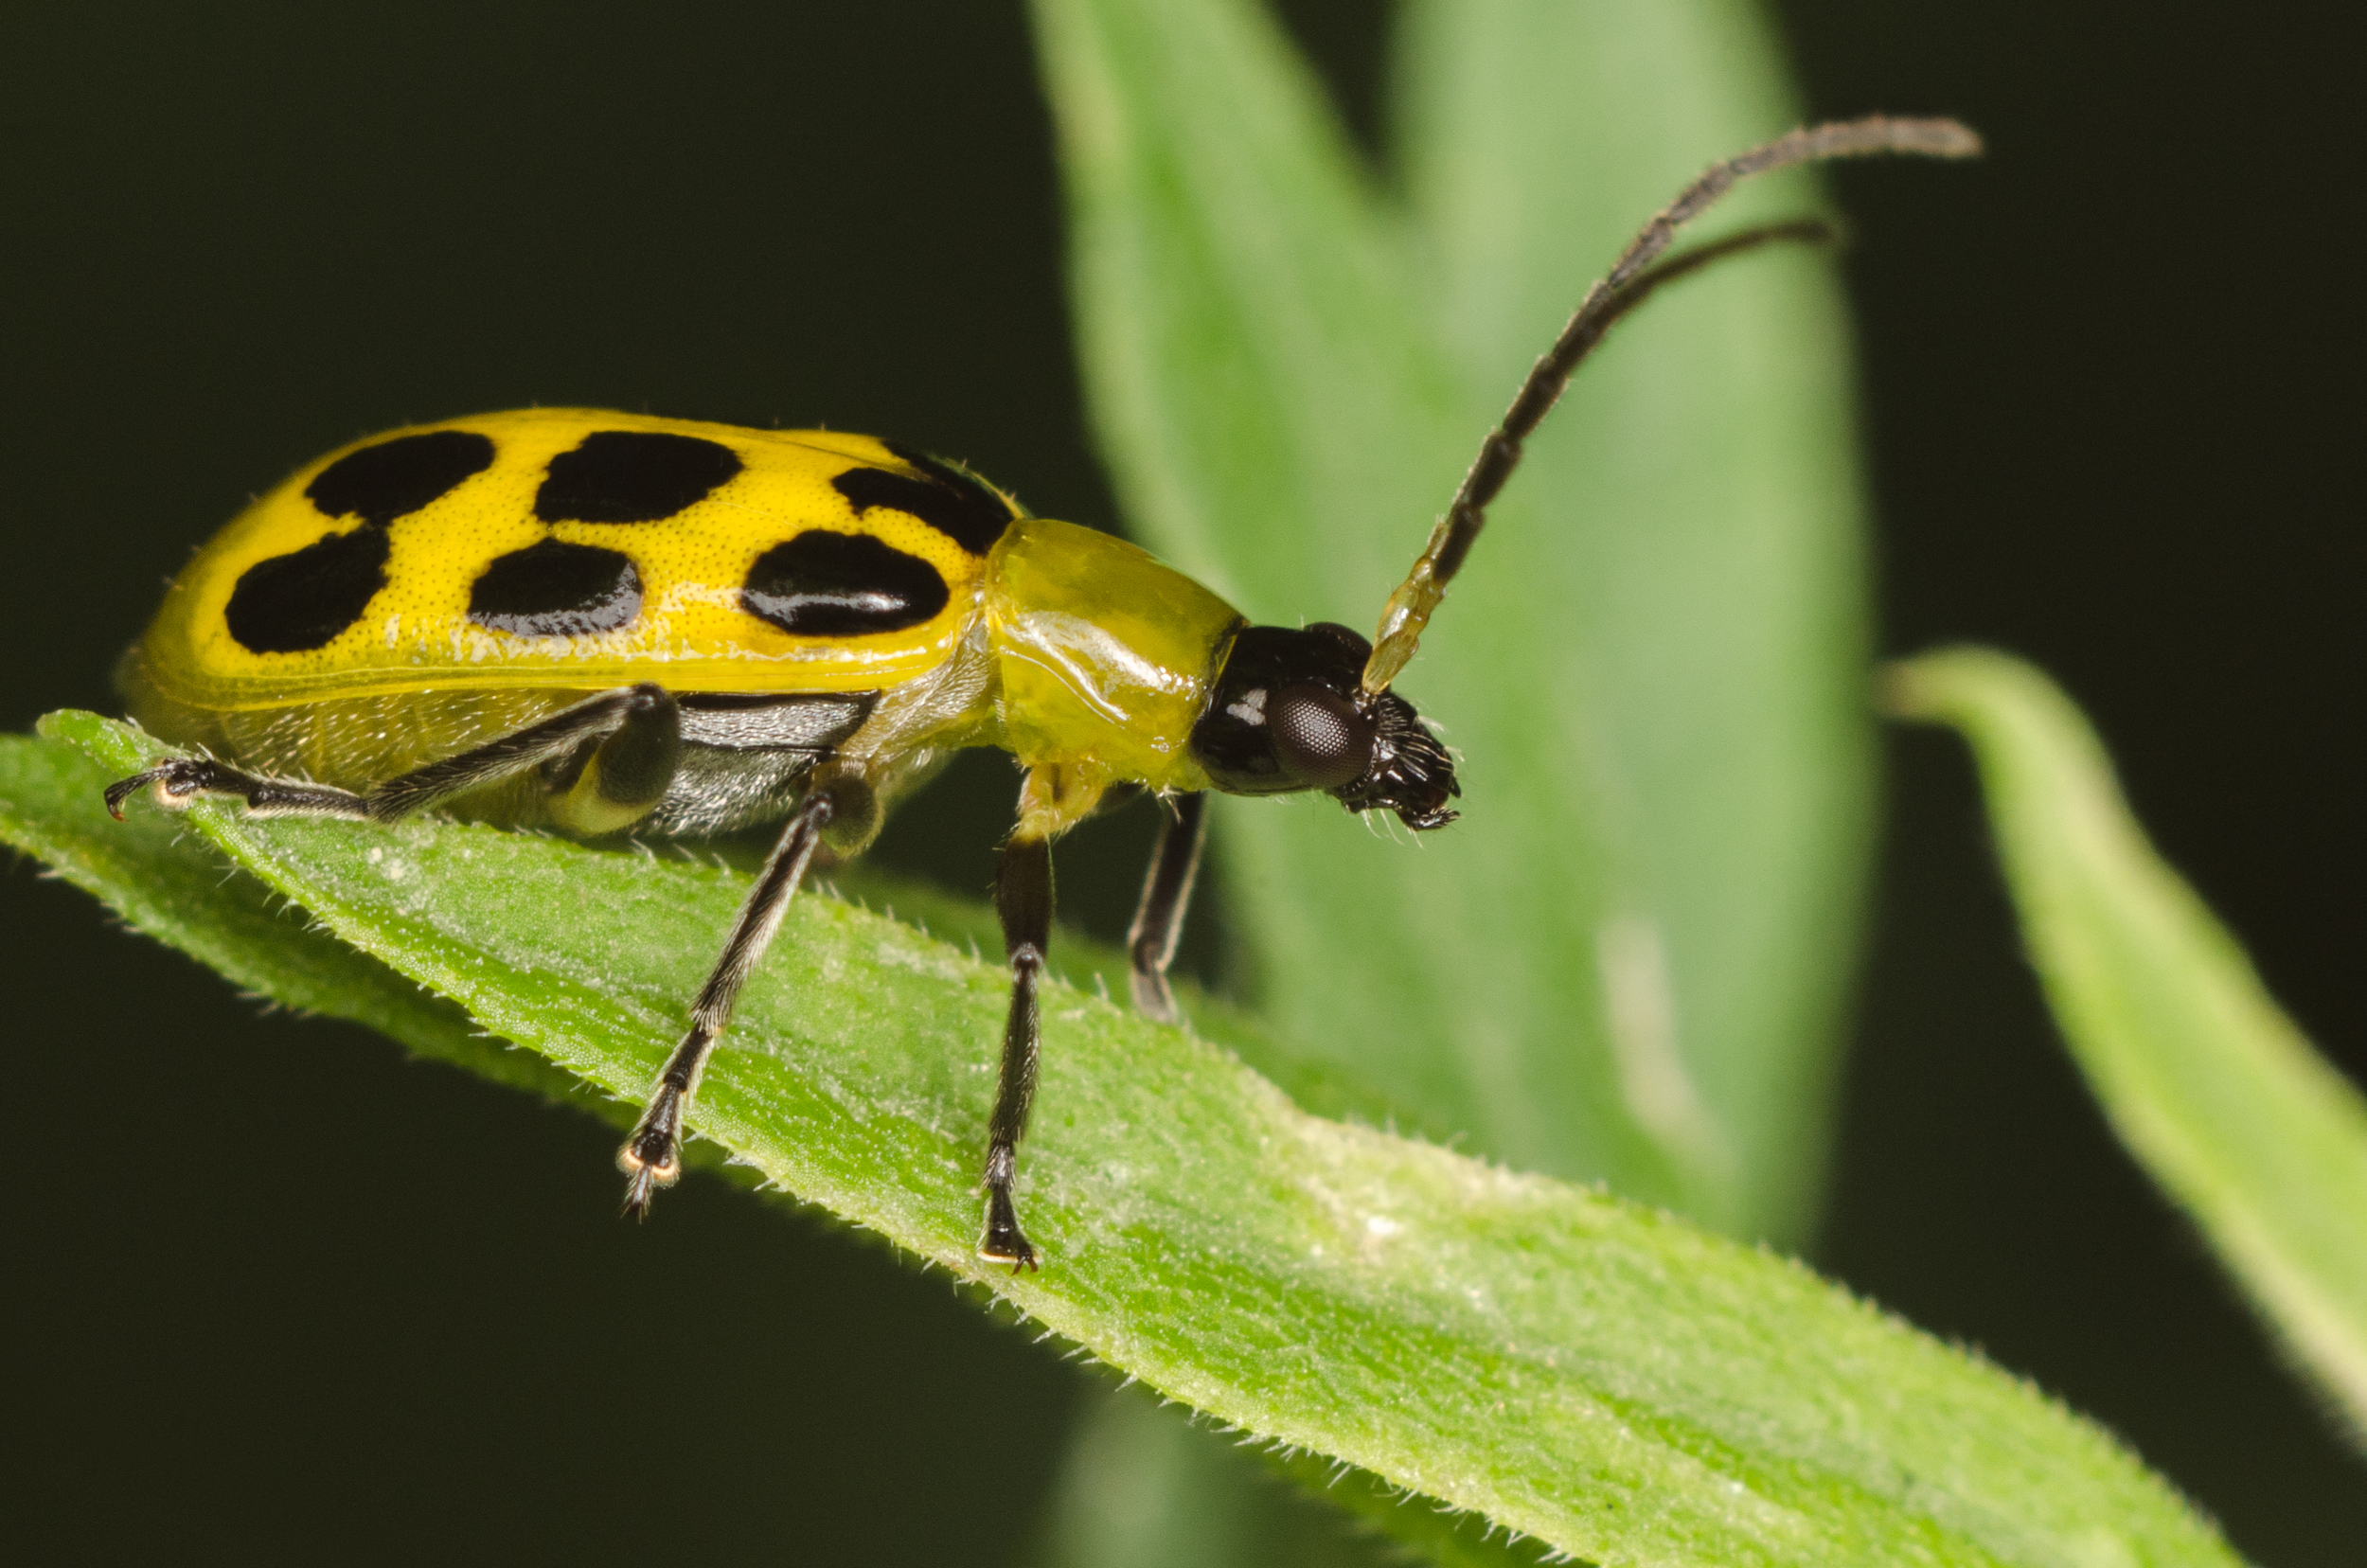 Spotted Cucumber Beetle - Diabrotica Undecimpunctata  Nikon D7000 ISO 200  f/11 1/125 sec. Nikkor 105mm f/4 Micro AI manual focus lens + 27mm + 20mm + 14mm + 12mm extension tubes, off-body flash with DIY diffuser